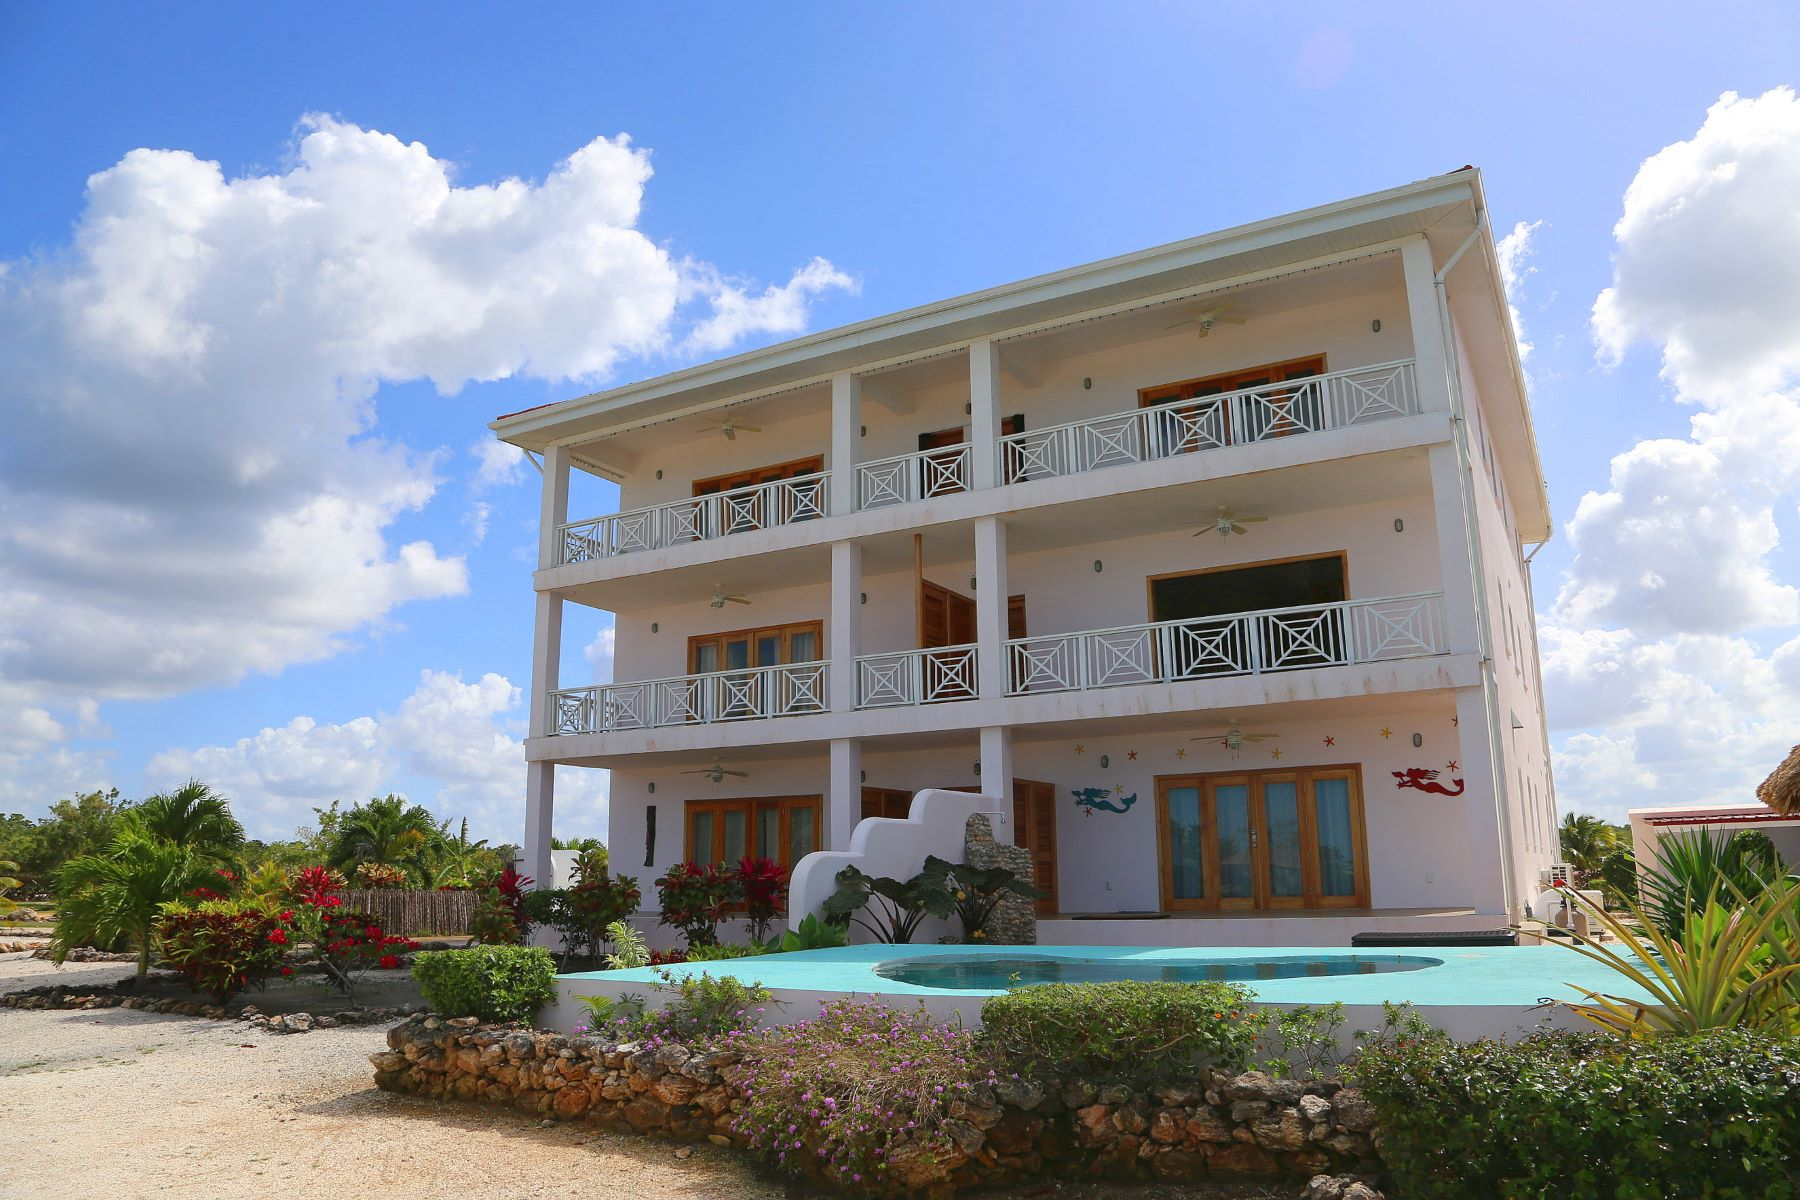 Condominium for Sale at Top Floor Condo at Orchid Bay Corozal, Corozal, Belize